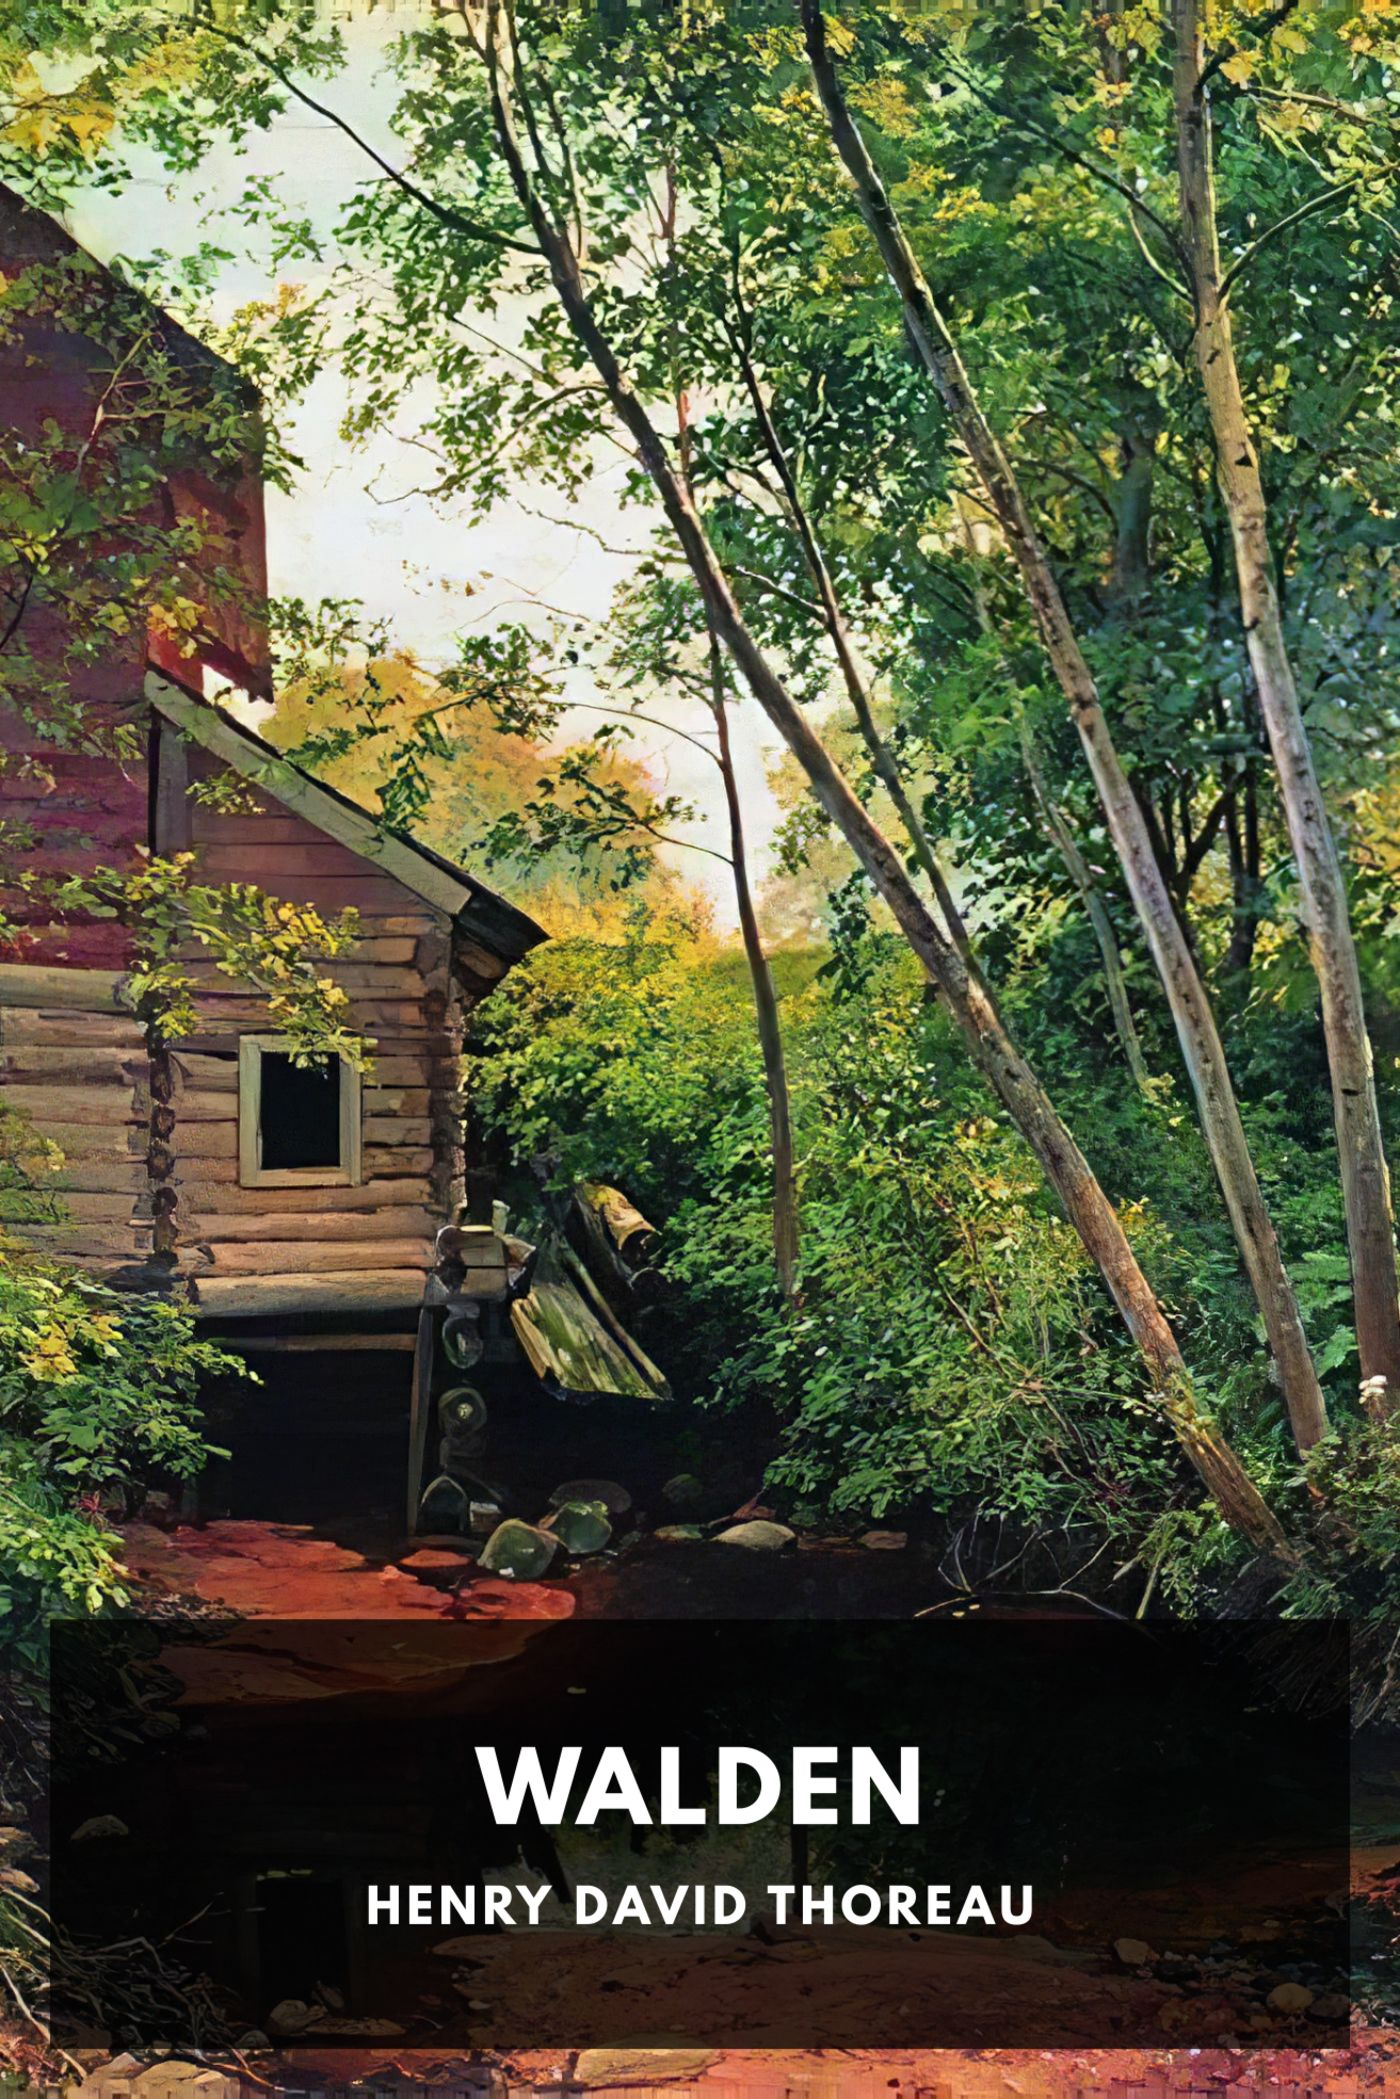 Walden, by Henry David Thoreau - Free ebook download - Standard Ebooks:  Free and liberated ebooks, carefully produced for the true book lover.